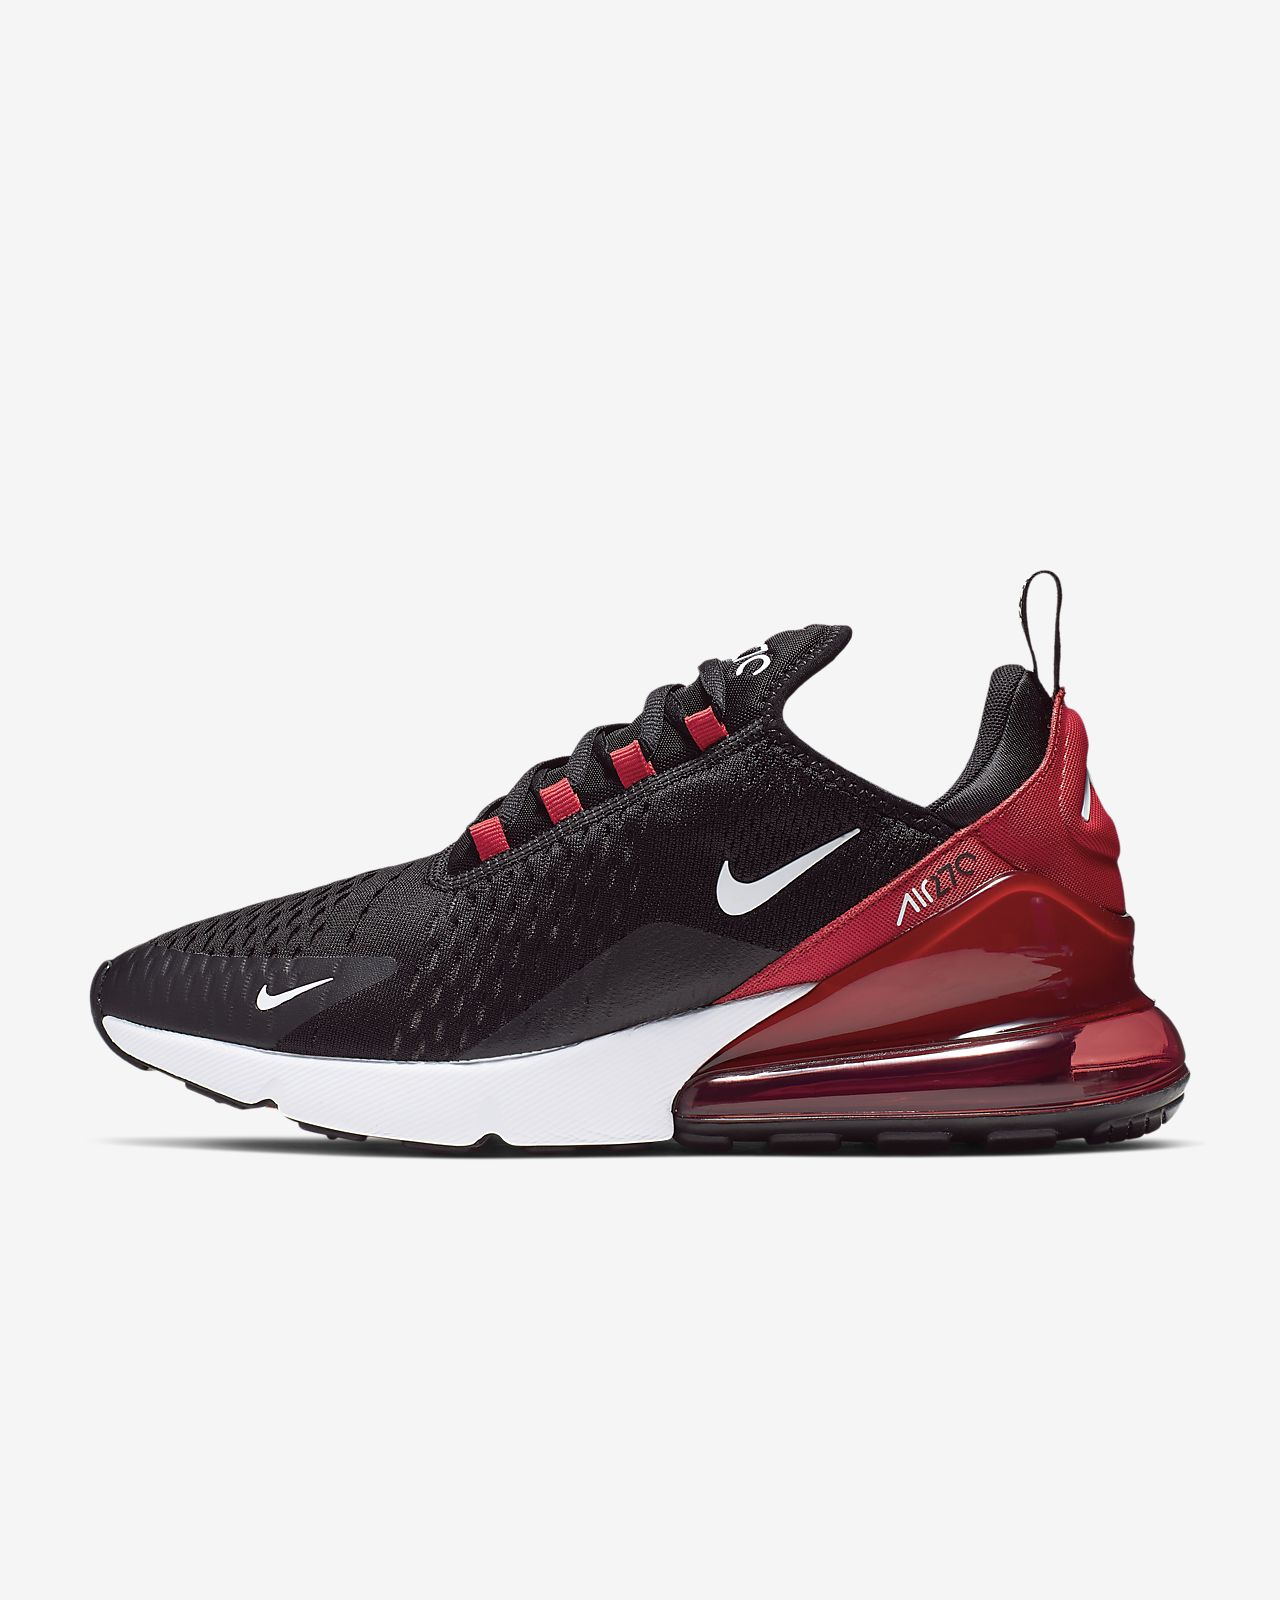 695b5e3d9f18 Nike Air Max 270 Men s Shoe. Nike.com GB